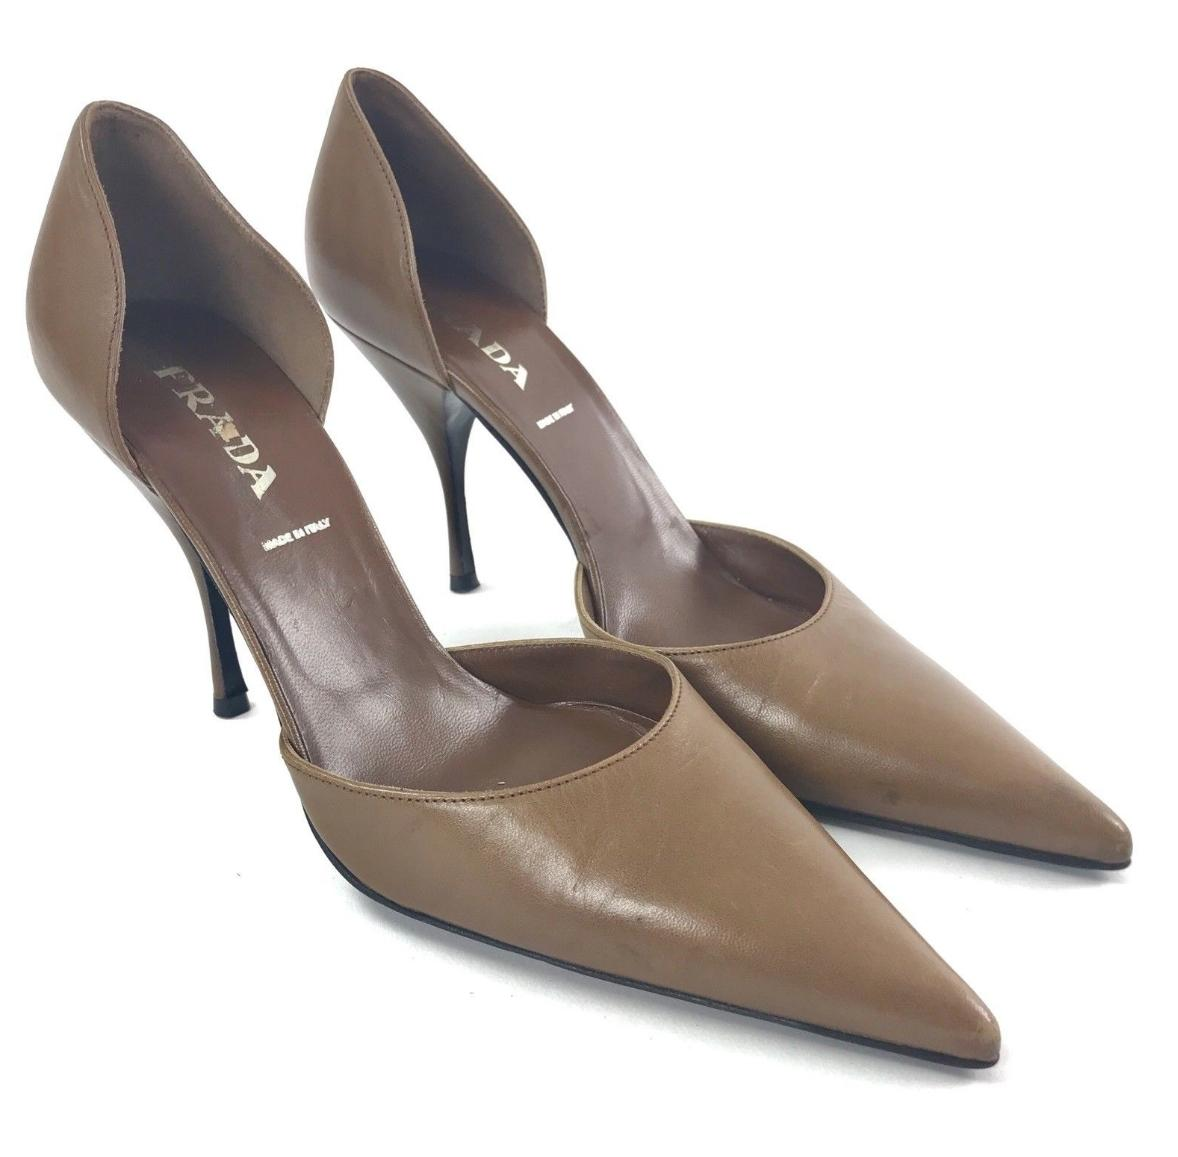 Prada Brown Women's D'orsay Leather Pointed Toe Stiletto Pumps Size US 7 Regular (M, B)